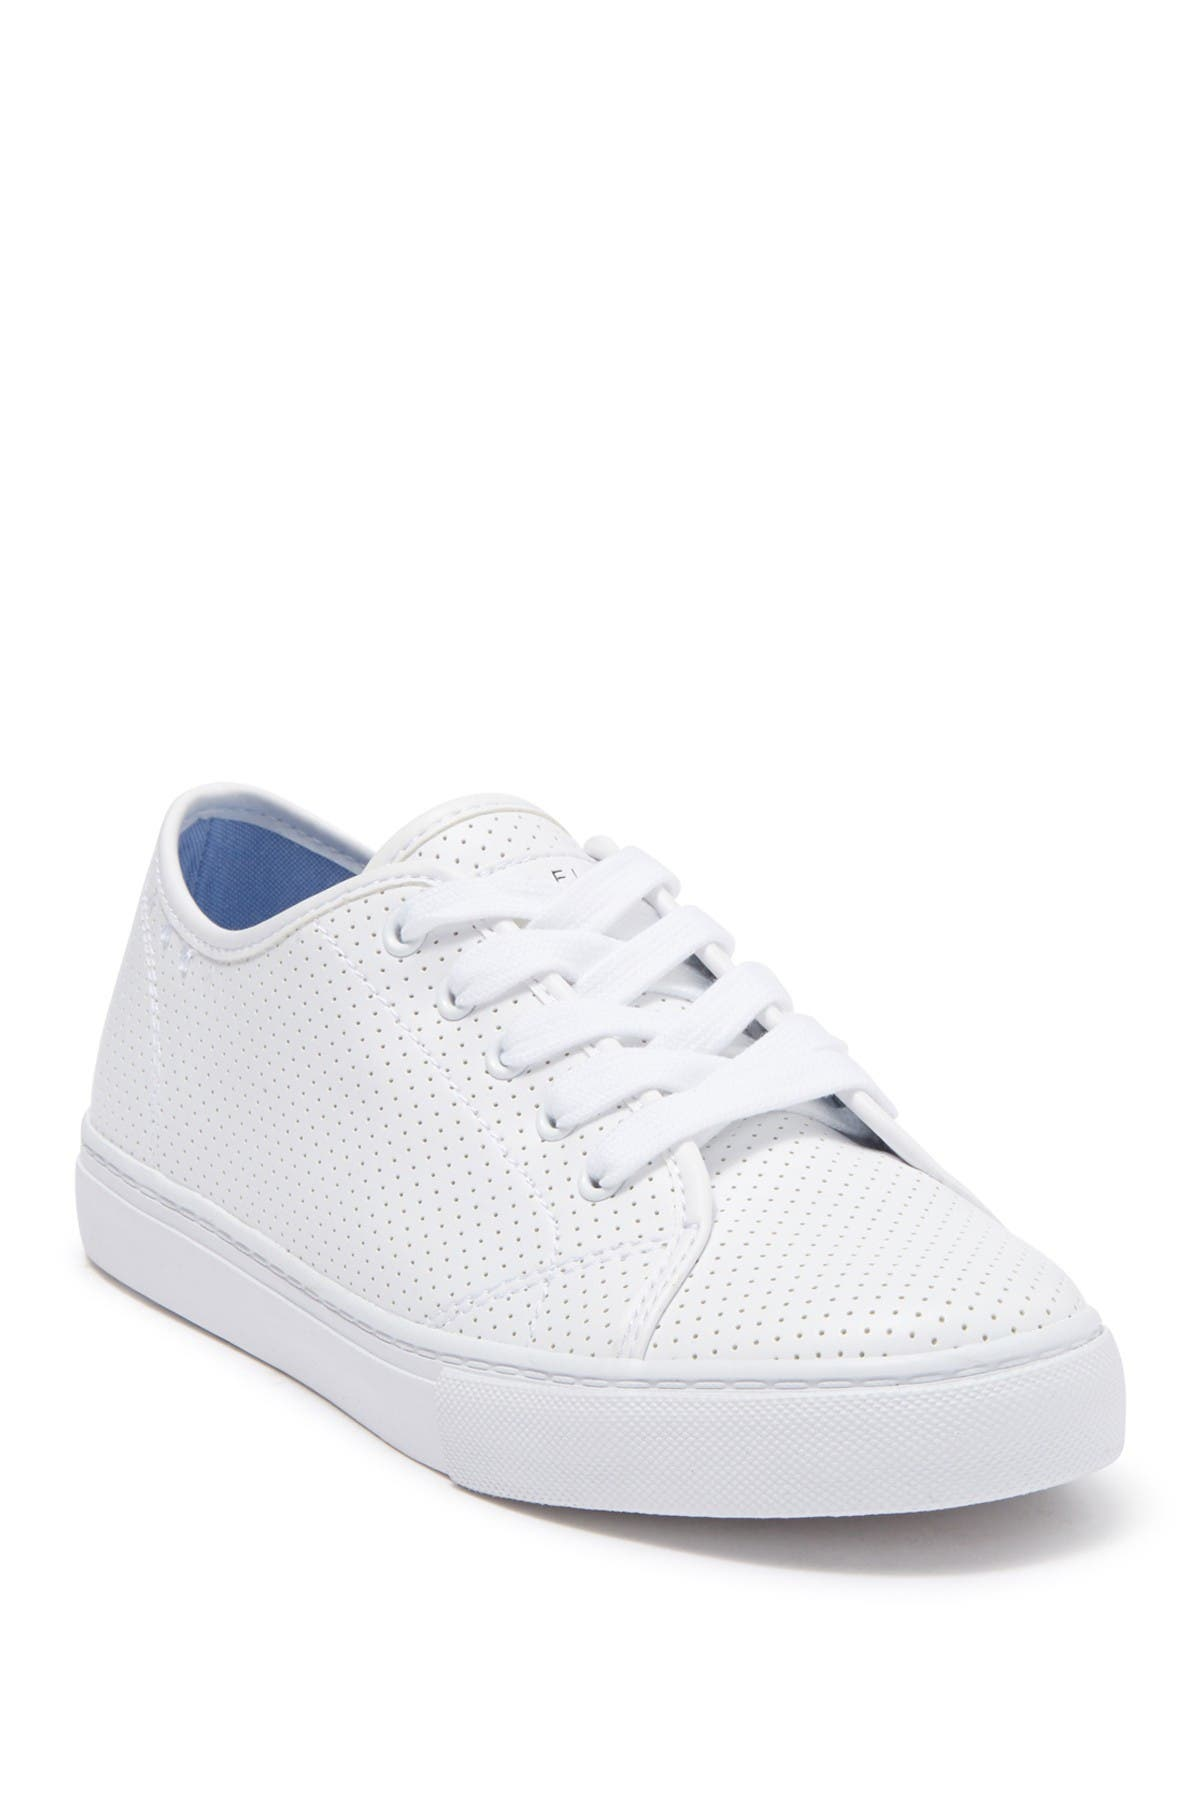 Image of Tommy Hilfiger Lumidee Perforated Sneaker